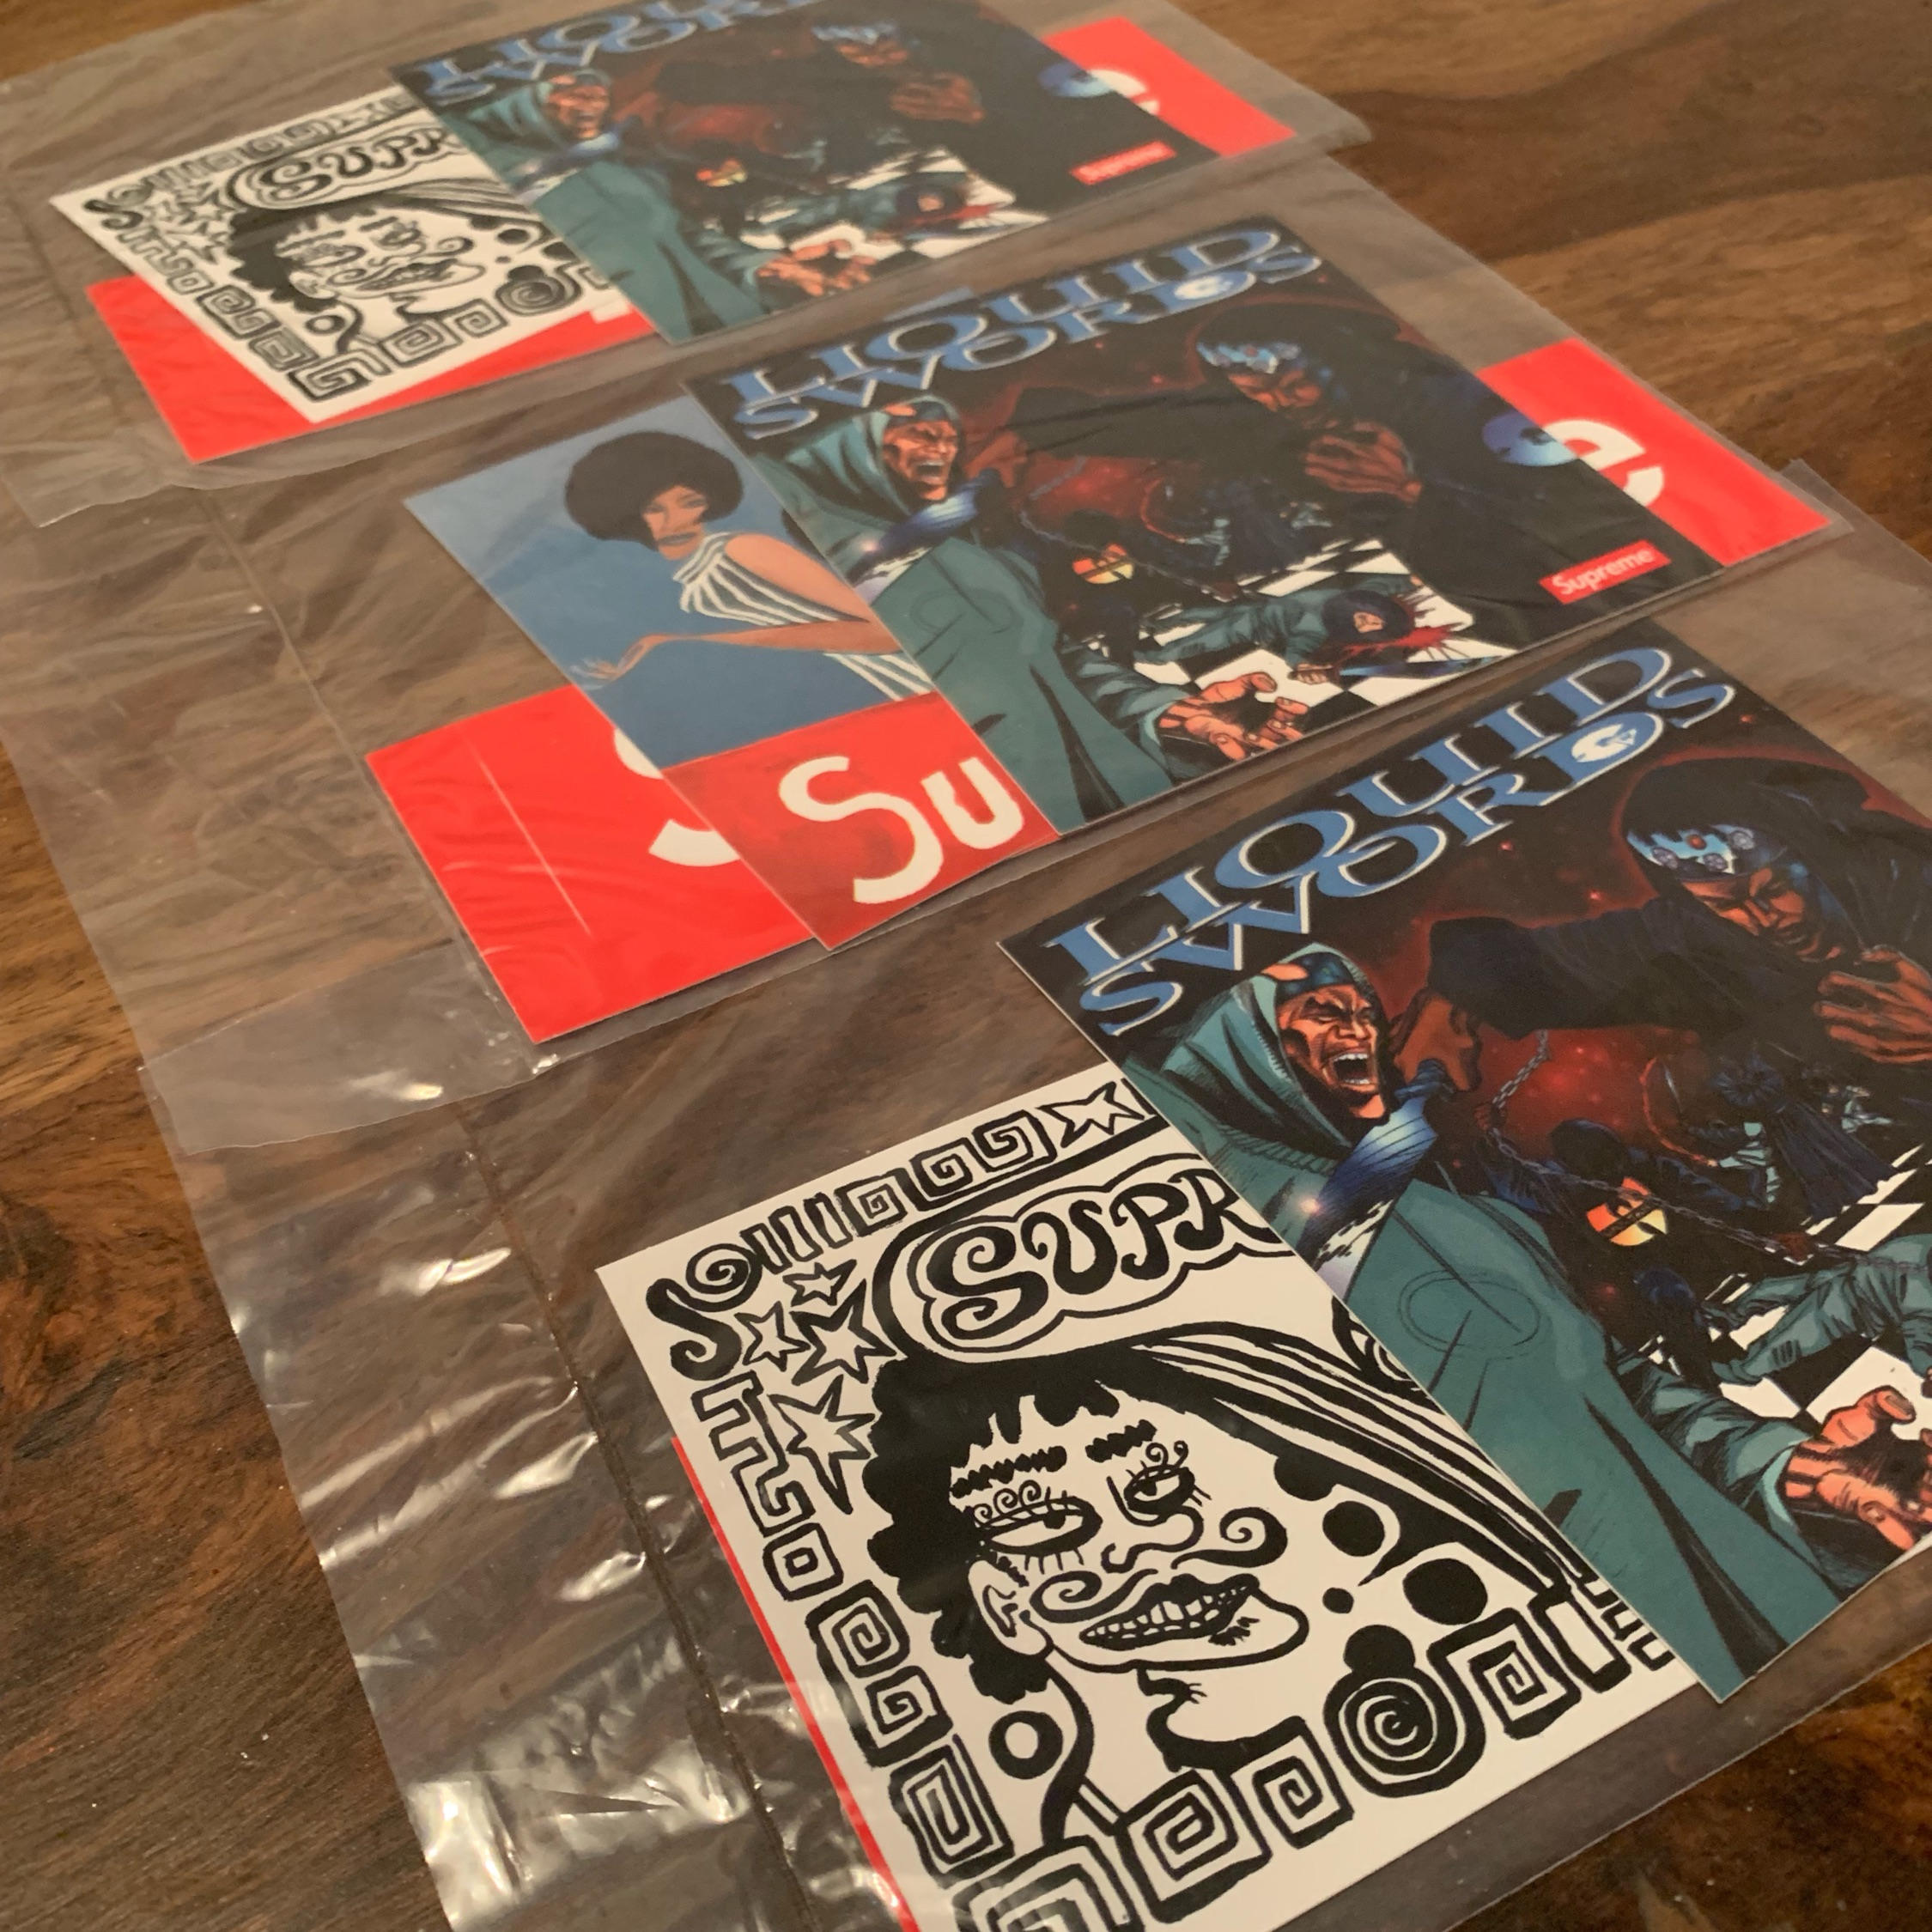 Supreme Liquid Swords Sticker Packs